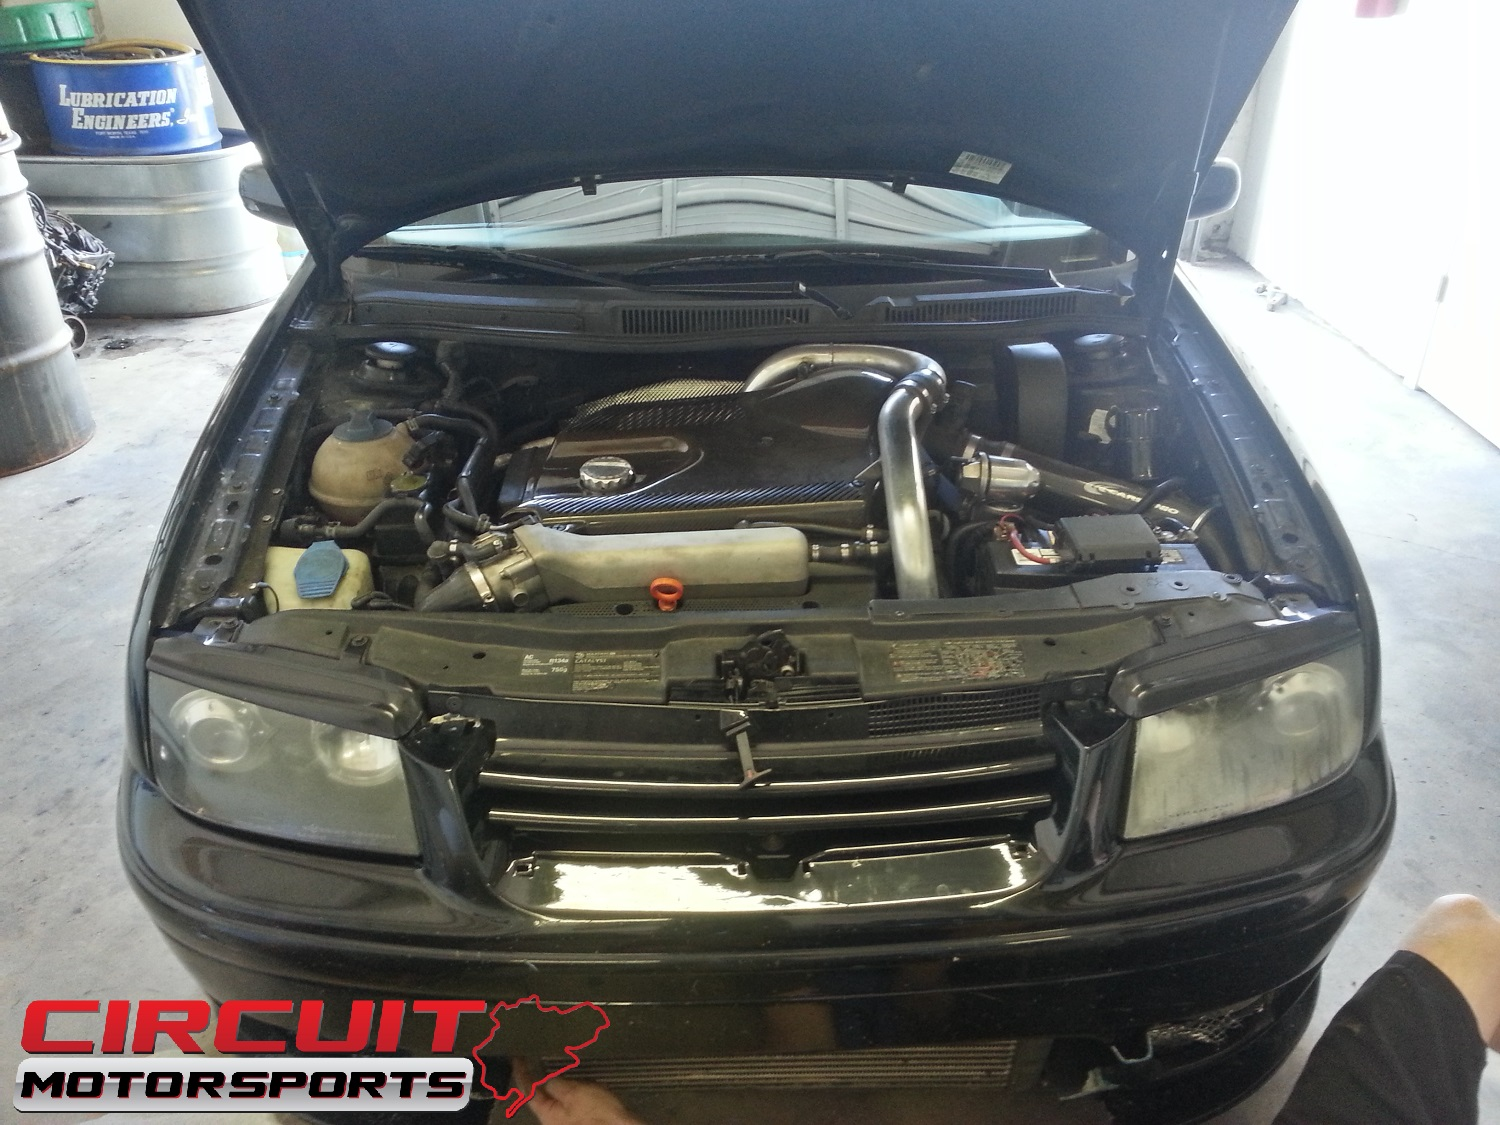 Circuit Motorsports: Flat-Out: VW Jetta in for Some